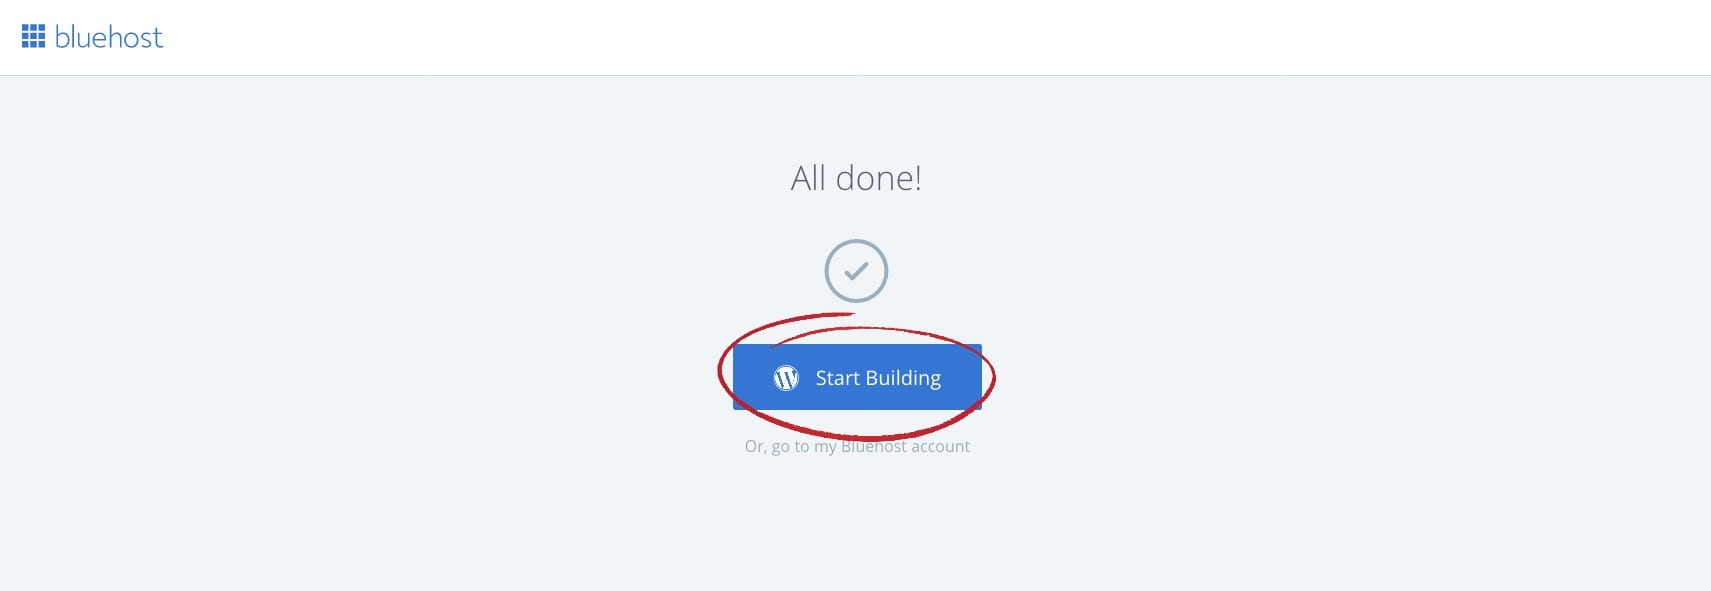 bluehost wordpress guide all done start building